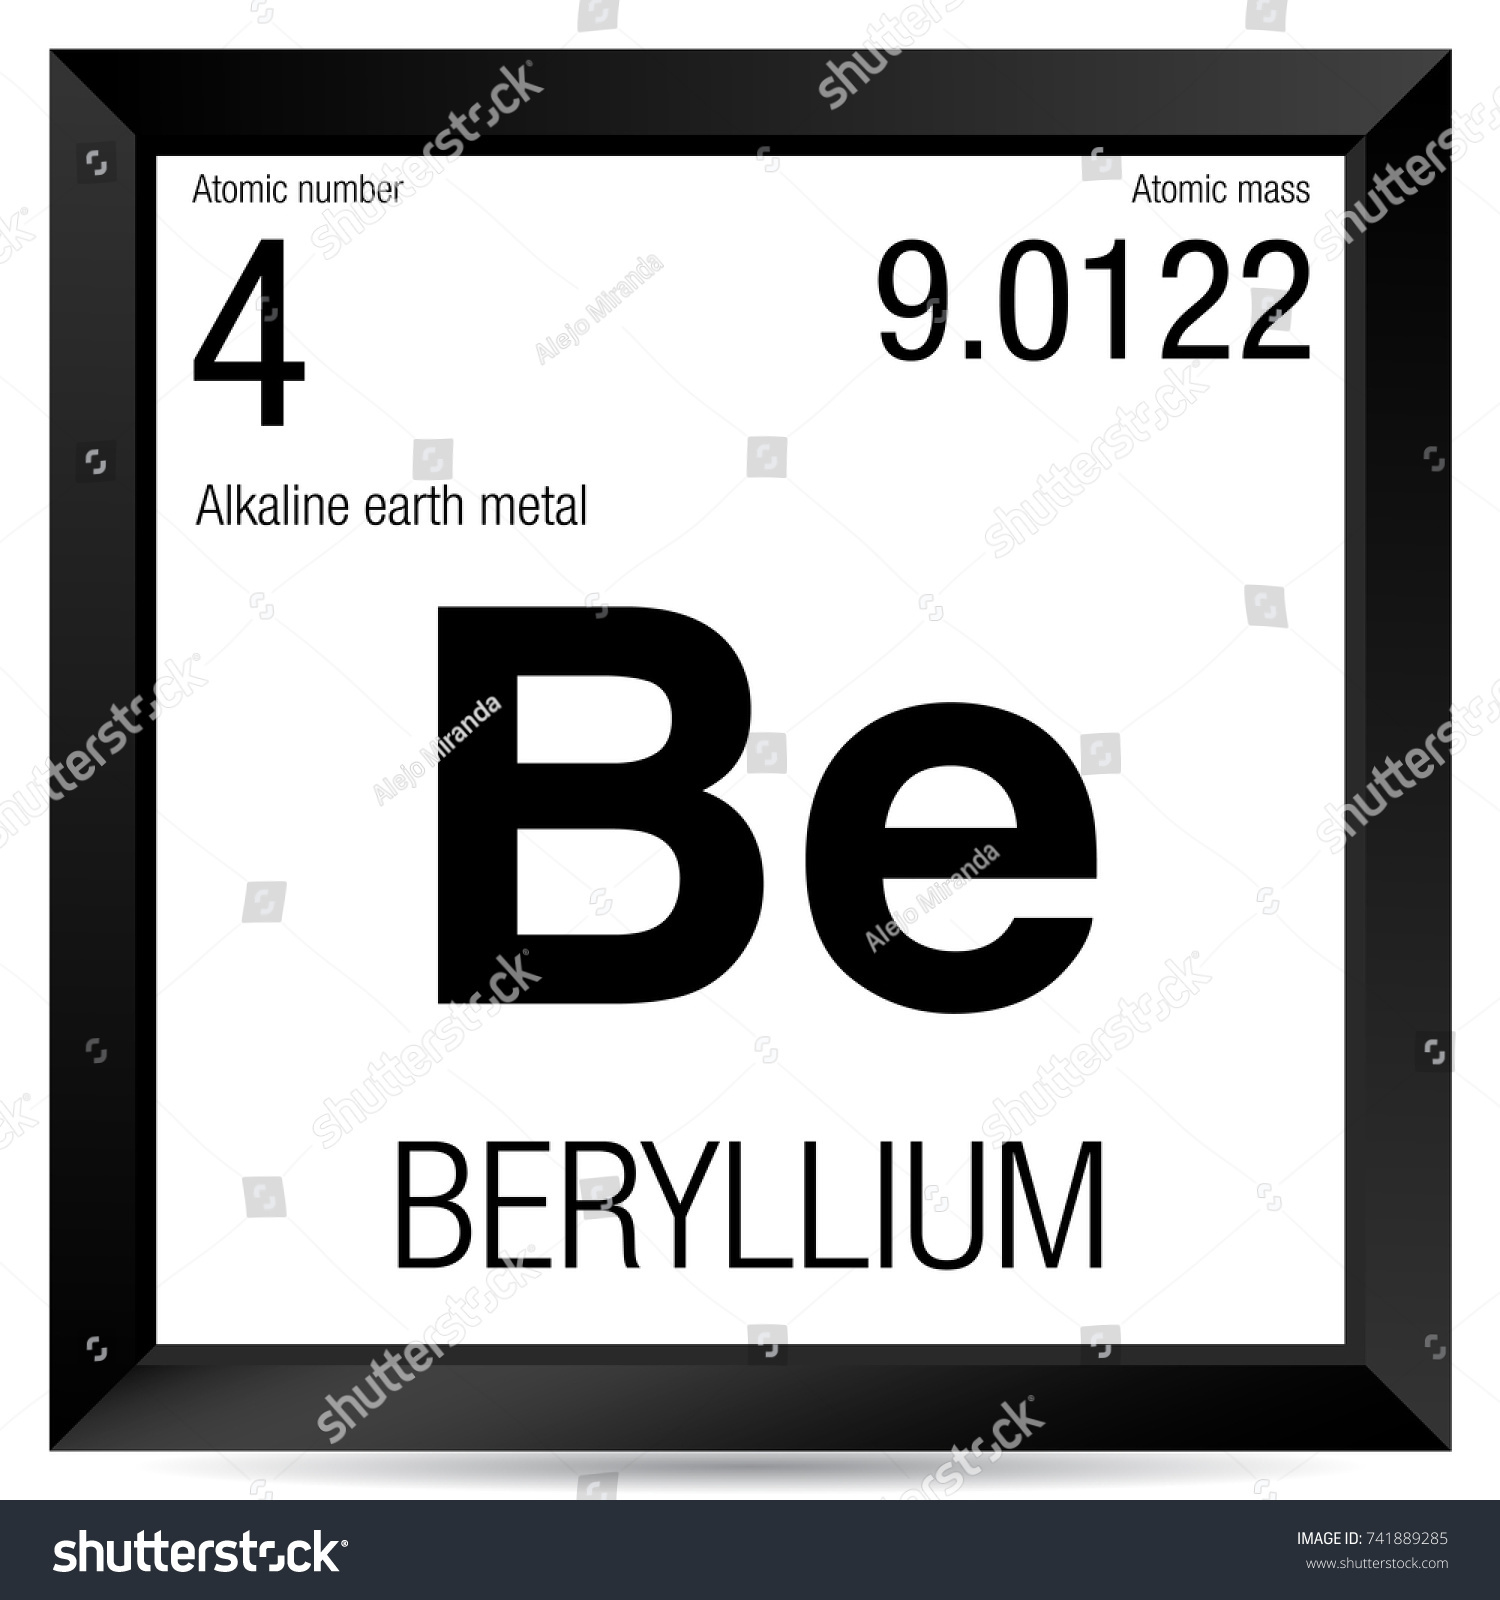 Beryllium symbol element number 4 periodic stock vector 741889285 beryllium symbol element number 4 of the periodic table of the elements chemistry buycottarizona Image collections